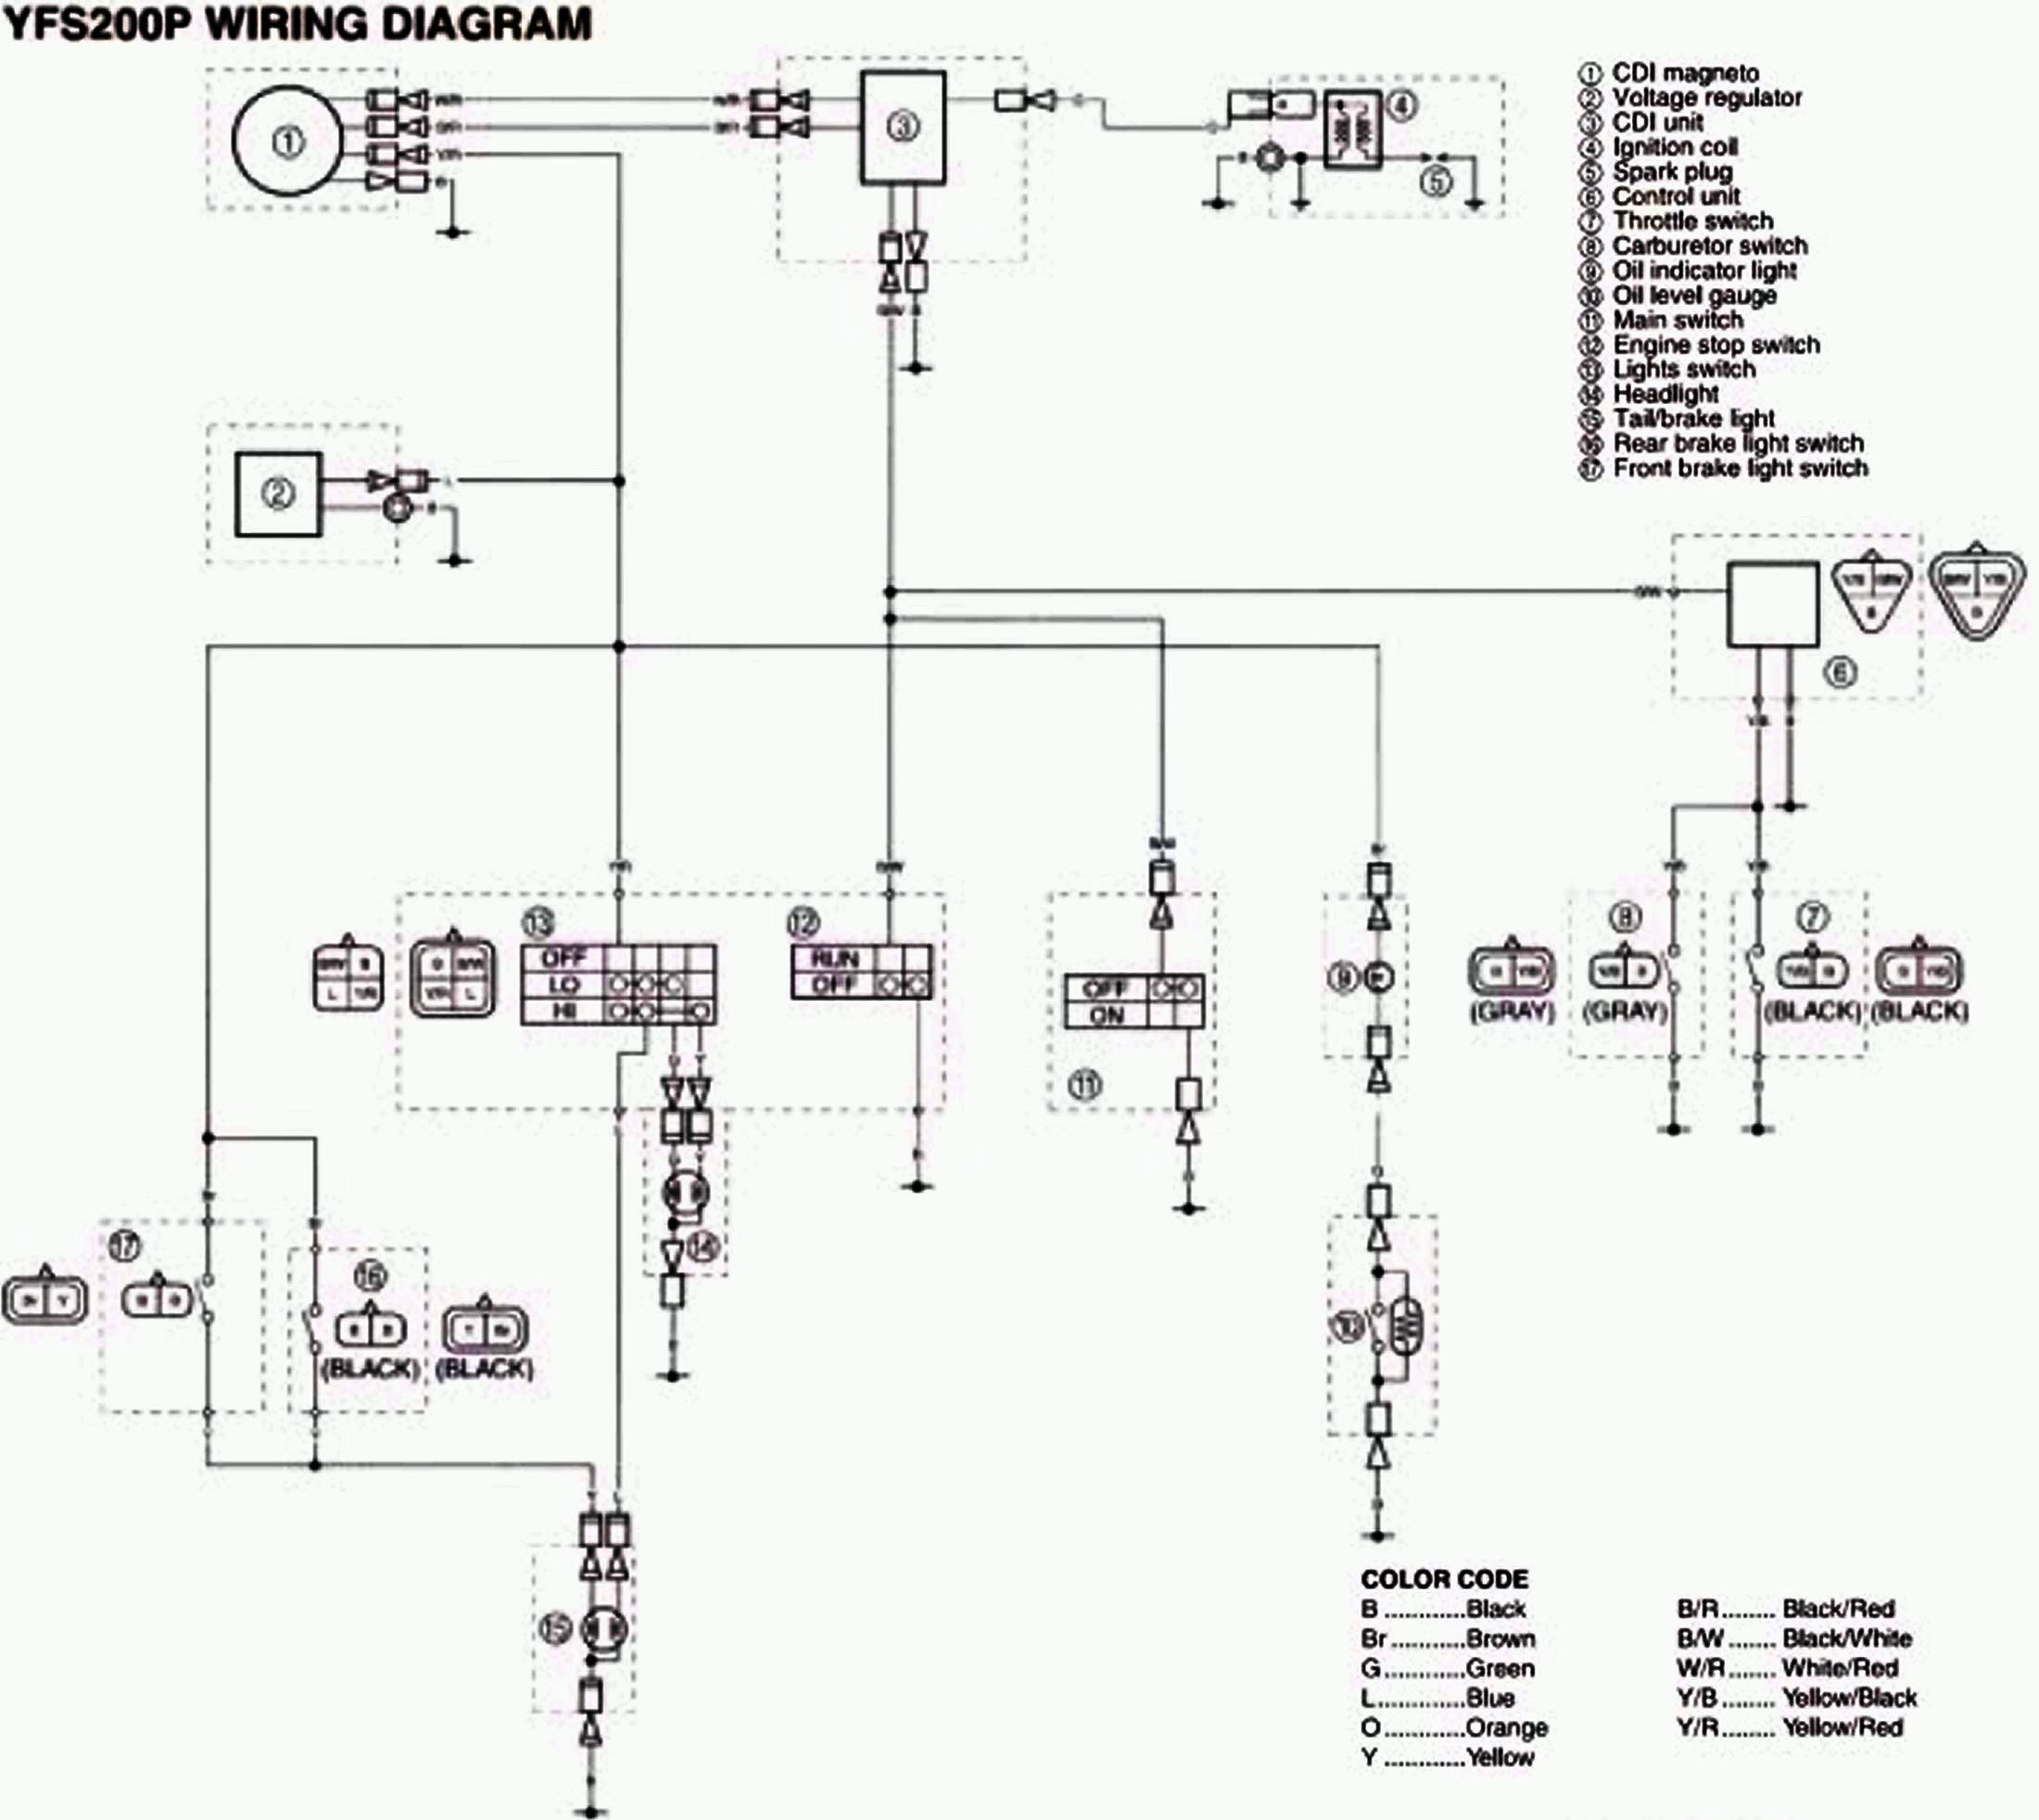 Stock wiring diagrams- | Blasterforum.com